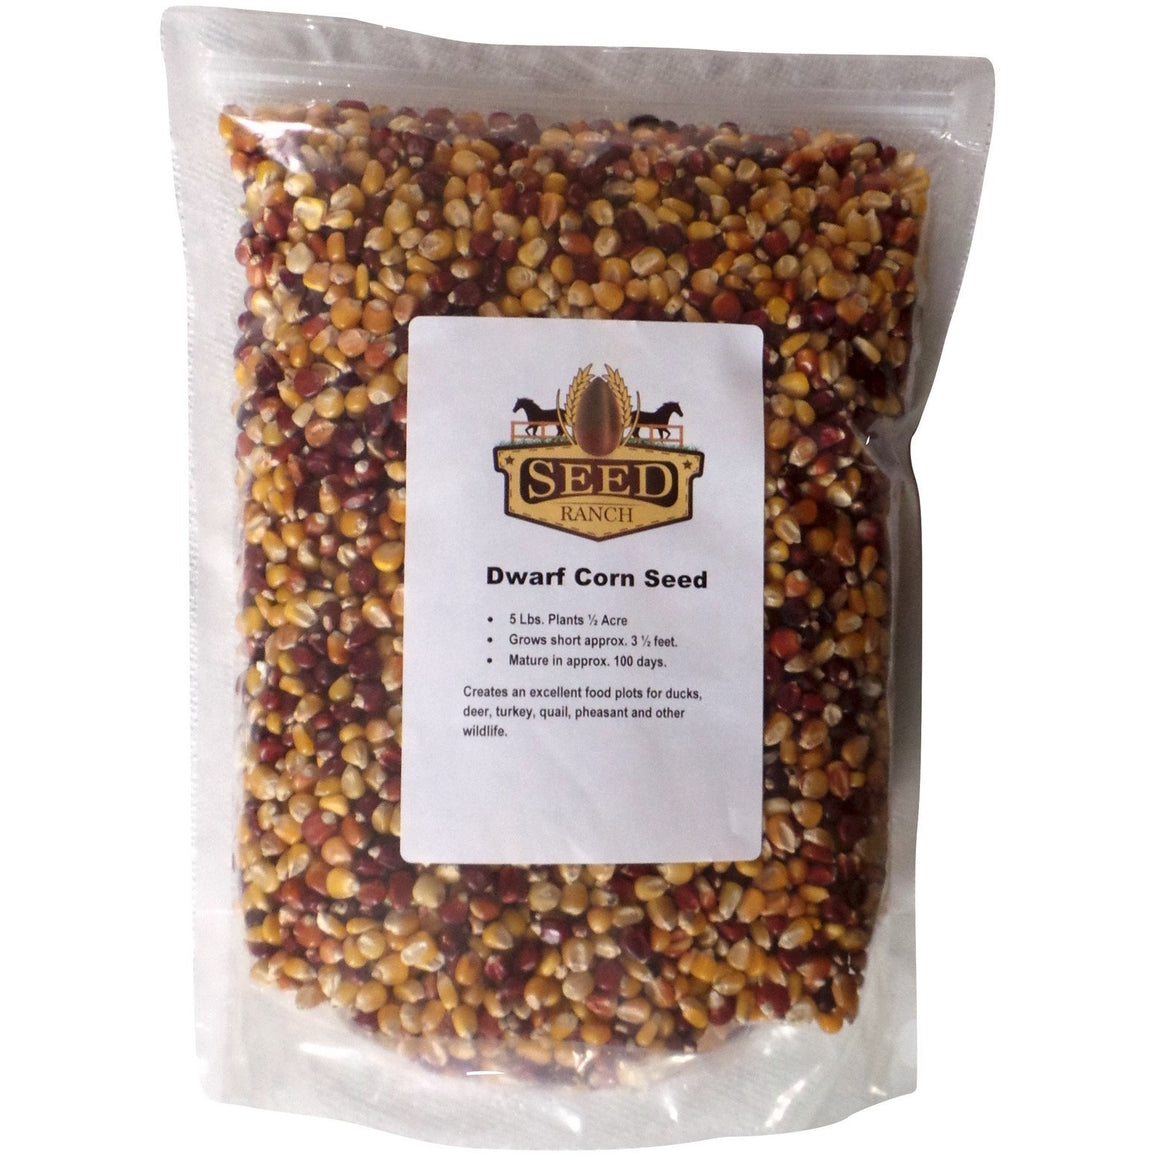 Dwarf Corn Food Plot Seed - 1 Lb. - Seed World